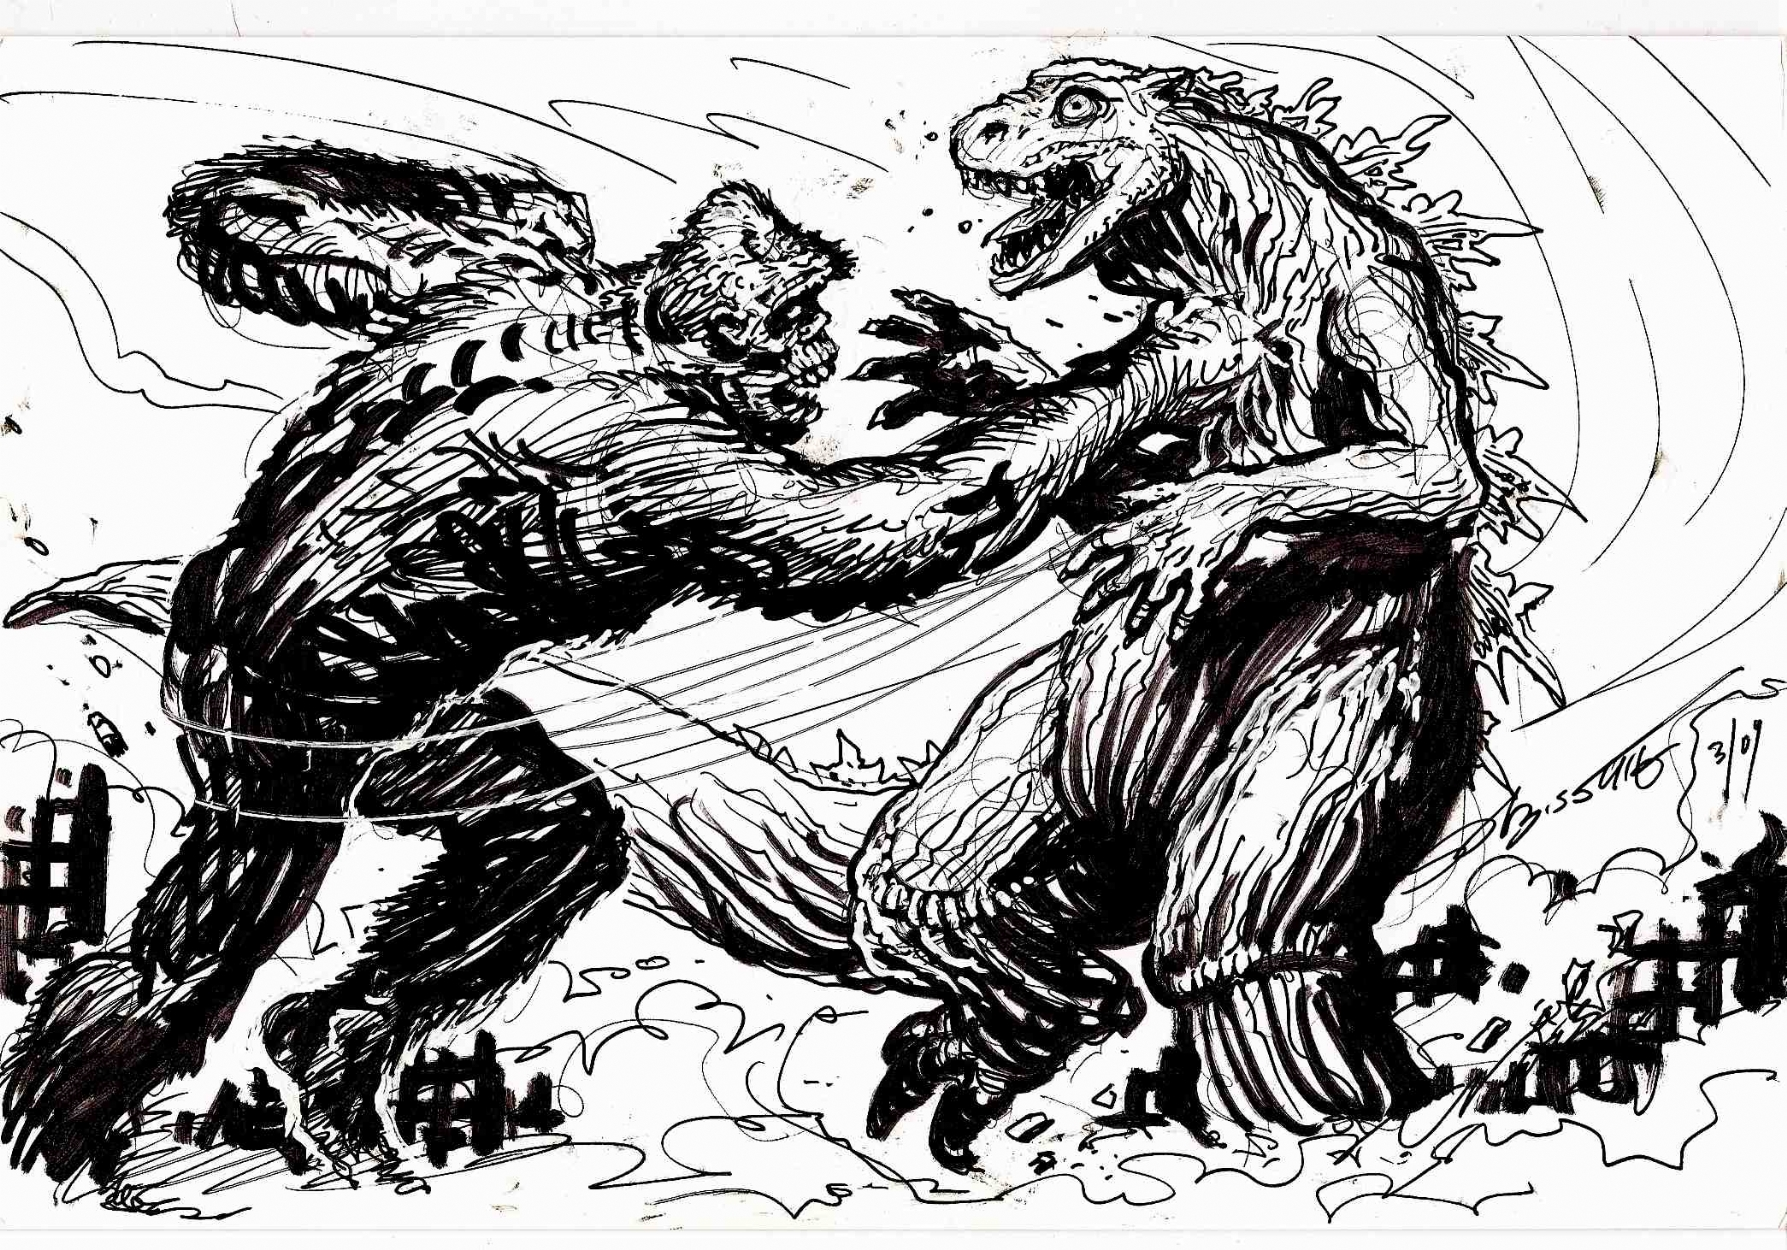 King Kong Vs Godzilla Rematch In Stephen Bissette S Sold